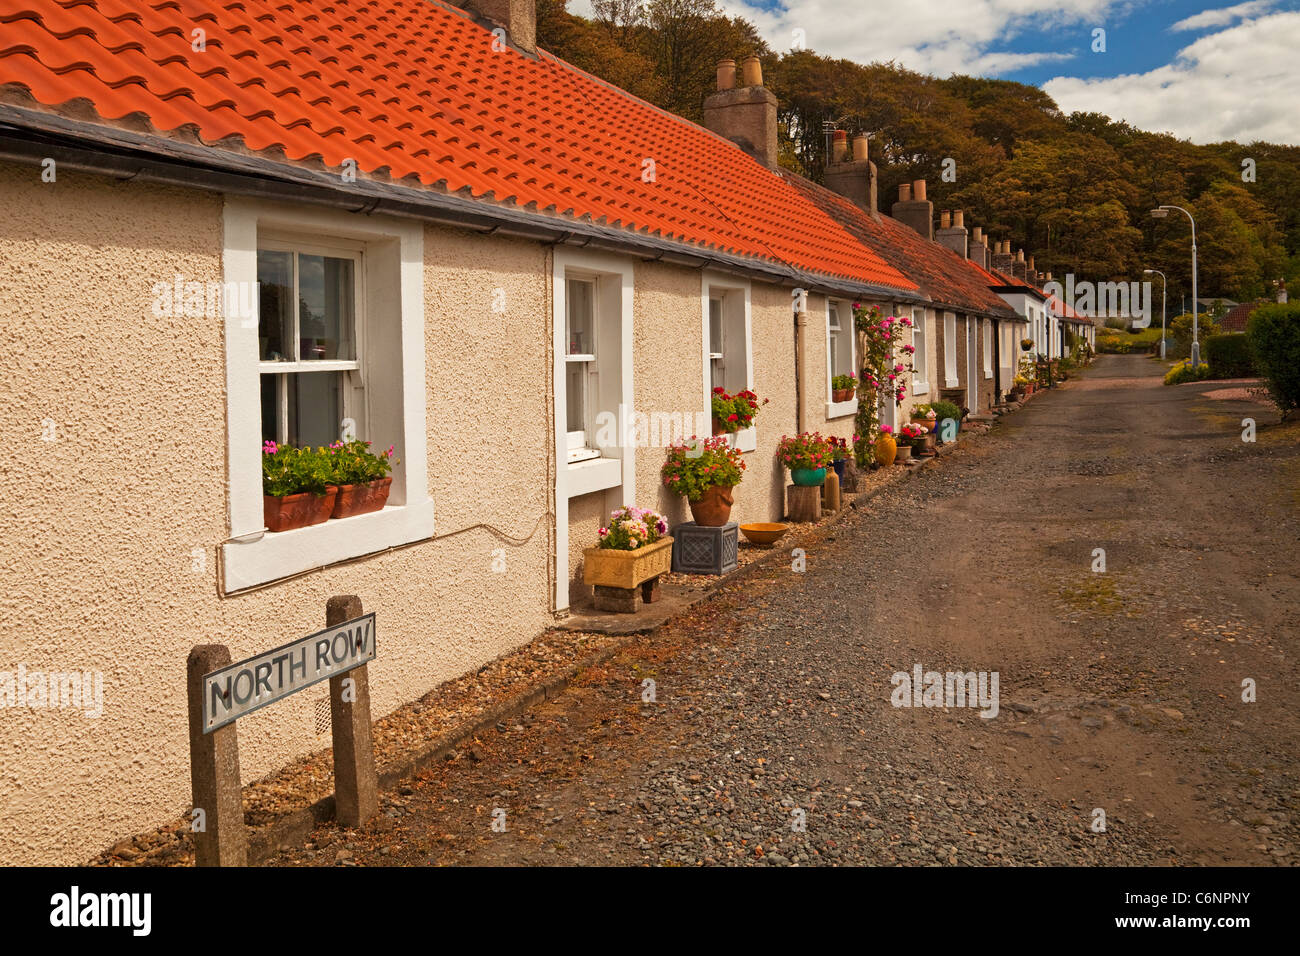 North Row, Charlestown - Stock Image